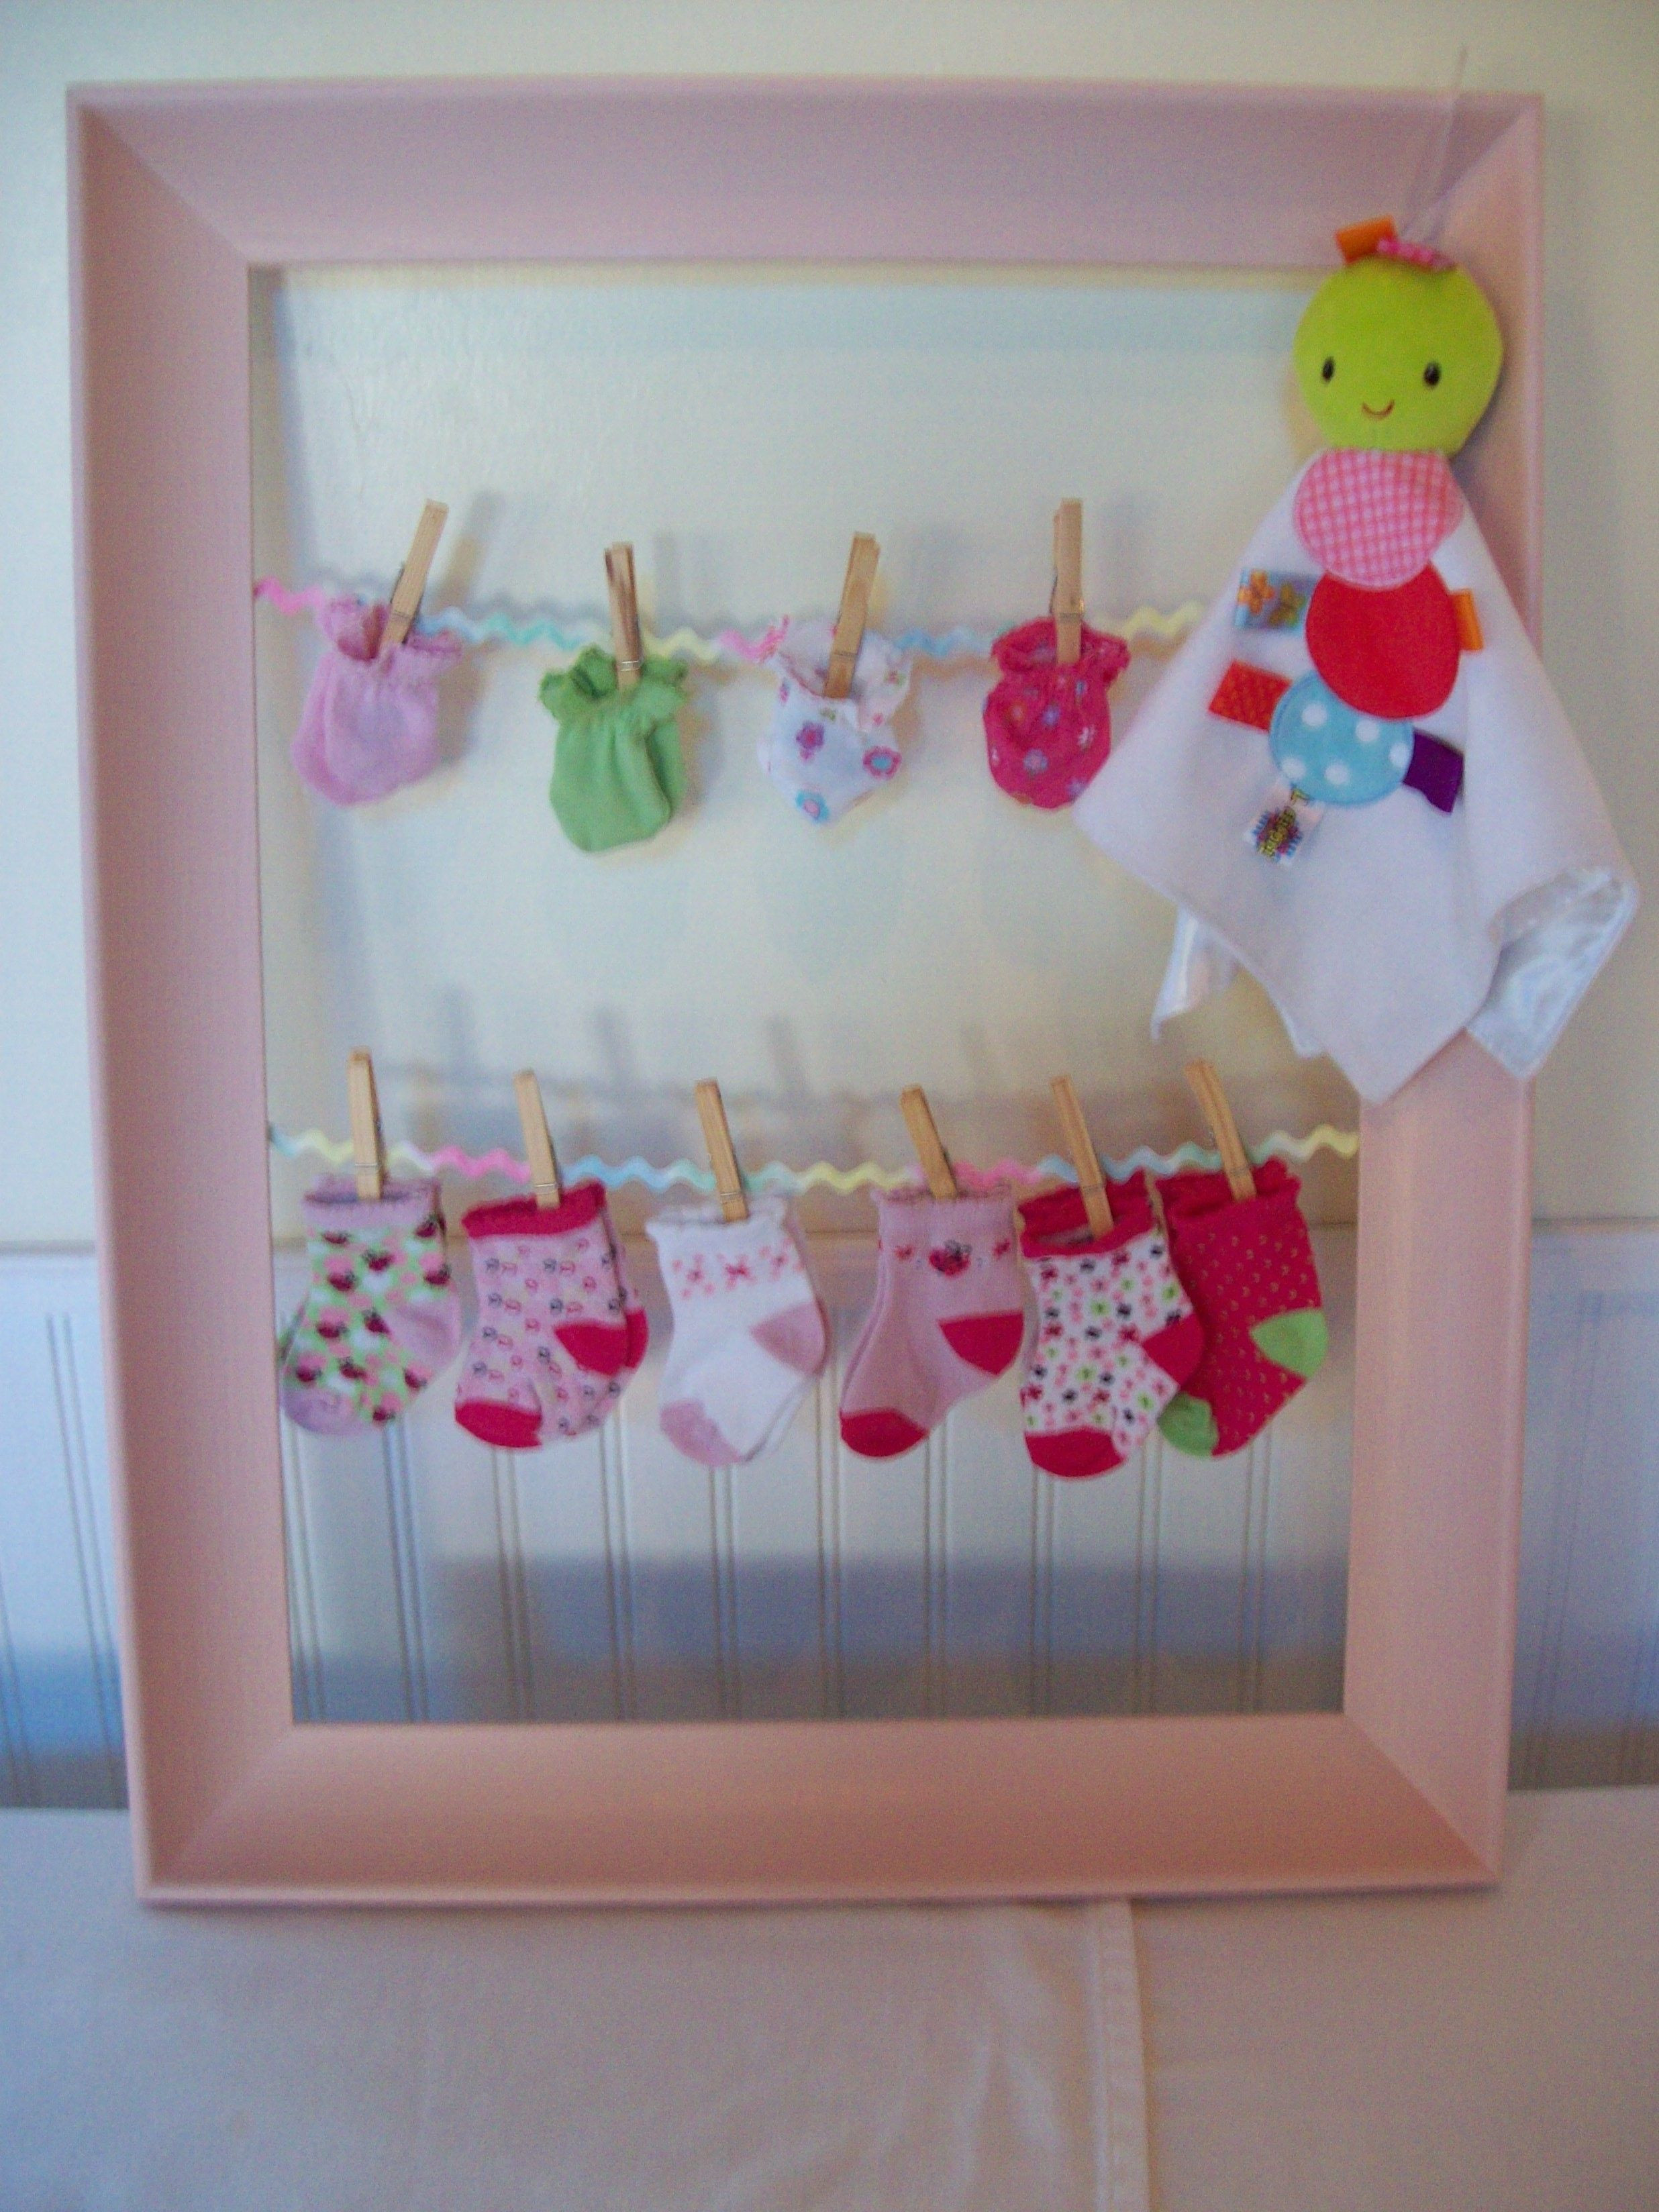 Best ideas about DIY Homemade Baby Shower Decorations . Save or Pin MY DIY Baby Shower Decorations Baby Shower Now.